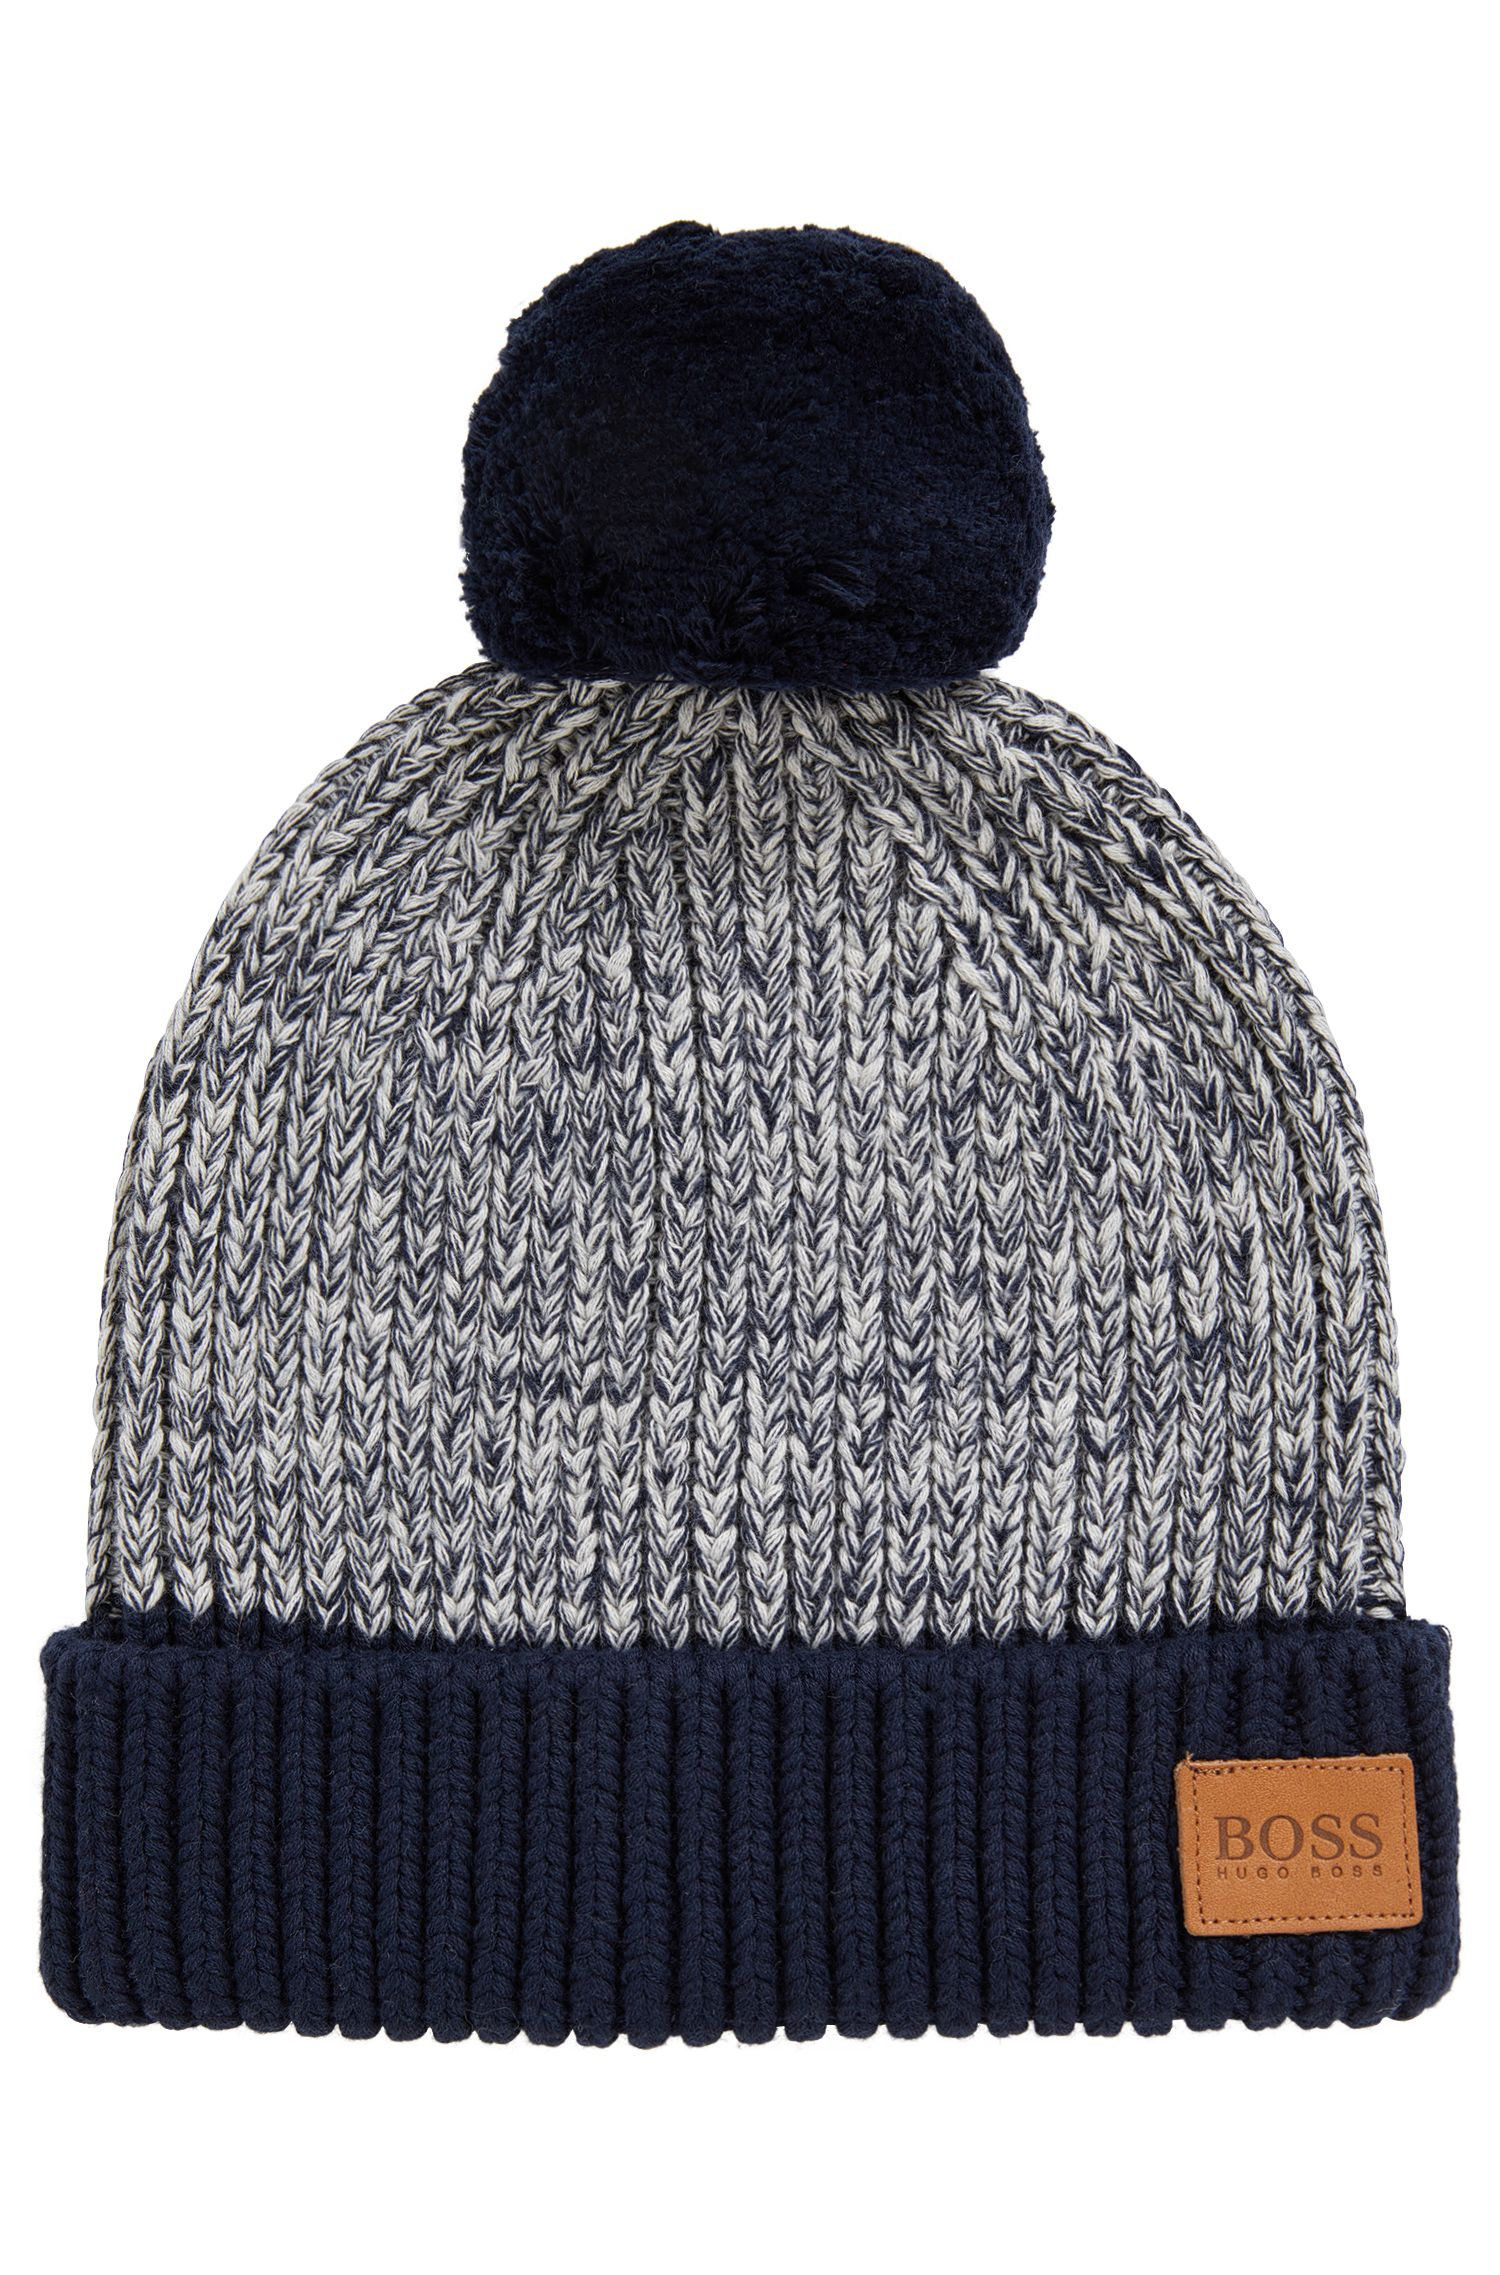 Kids' beanie hat in knitted cotton